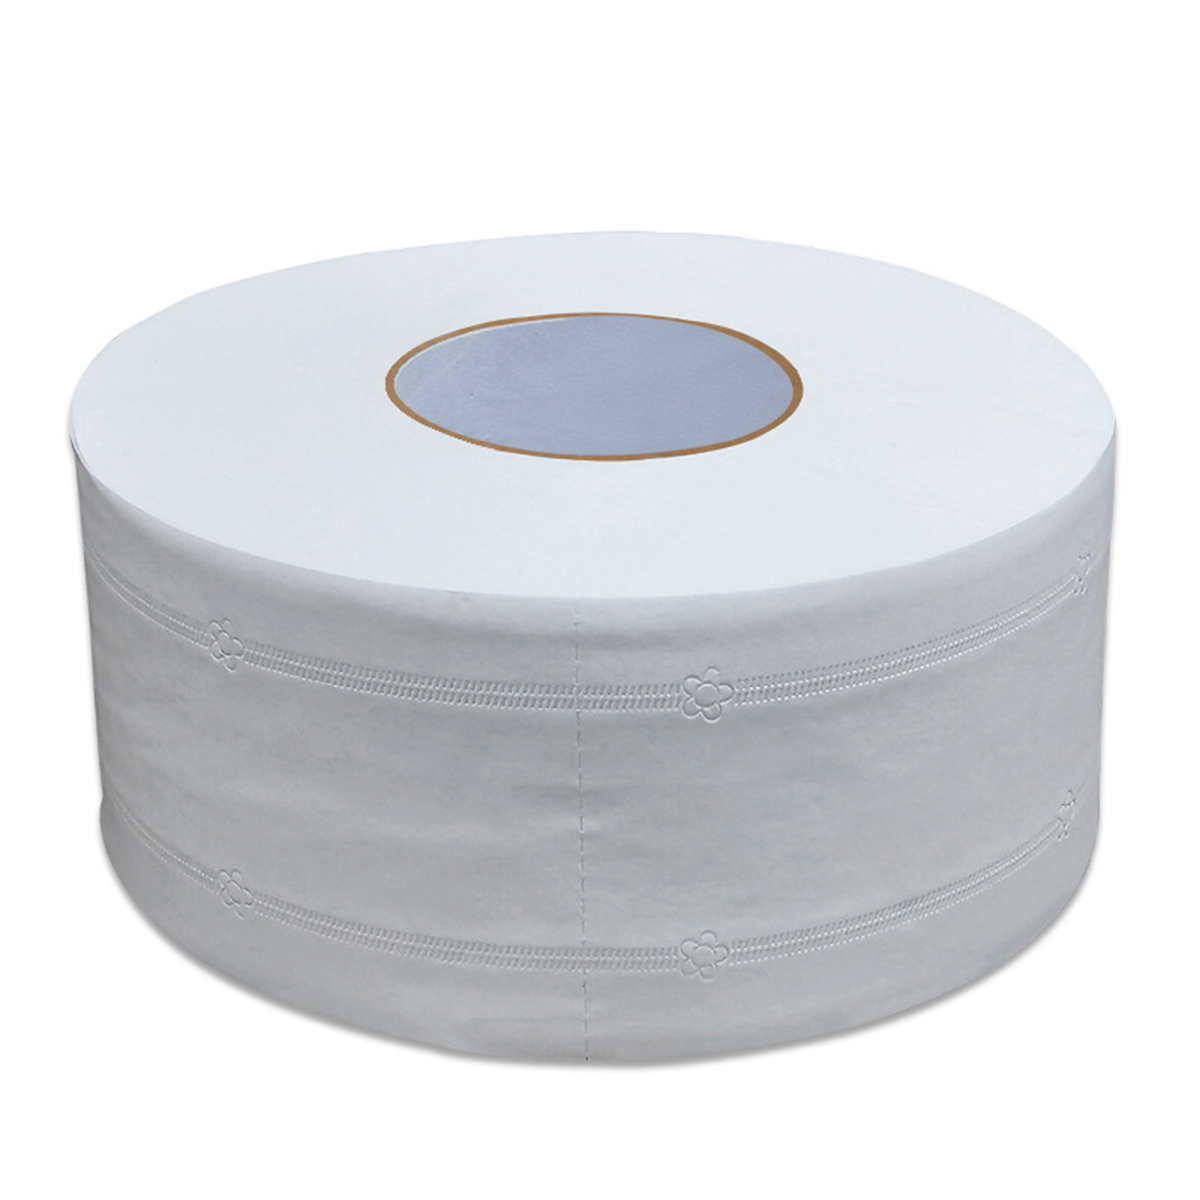 Quality 1 Roll Top Jumbo Soft Roll Home Toilet Paper 4-Layer Native Wood Toilet Paper Pulp Rolling Paper Strong Water Absorption